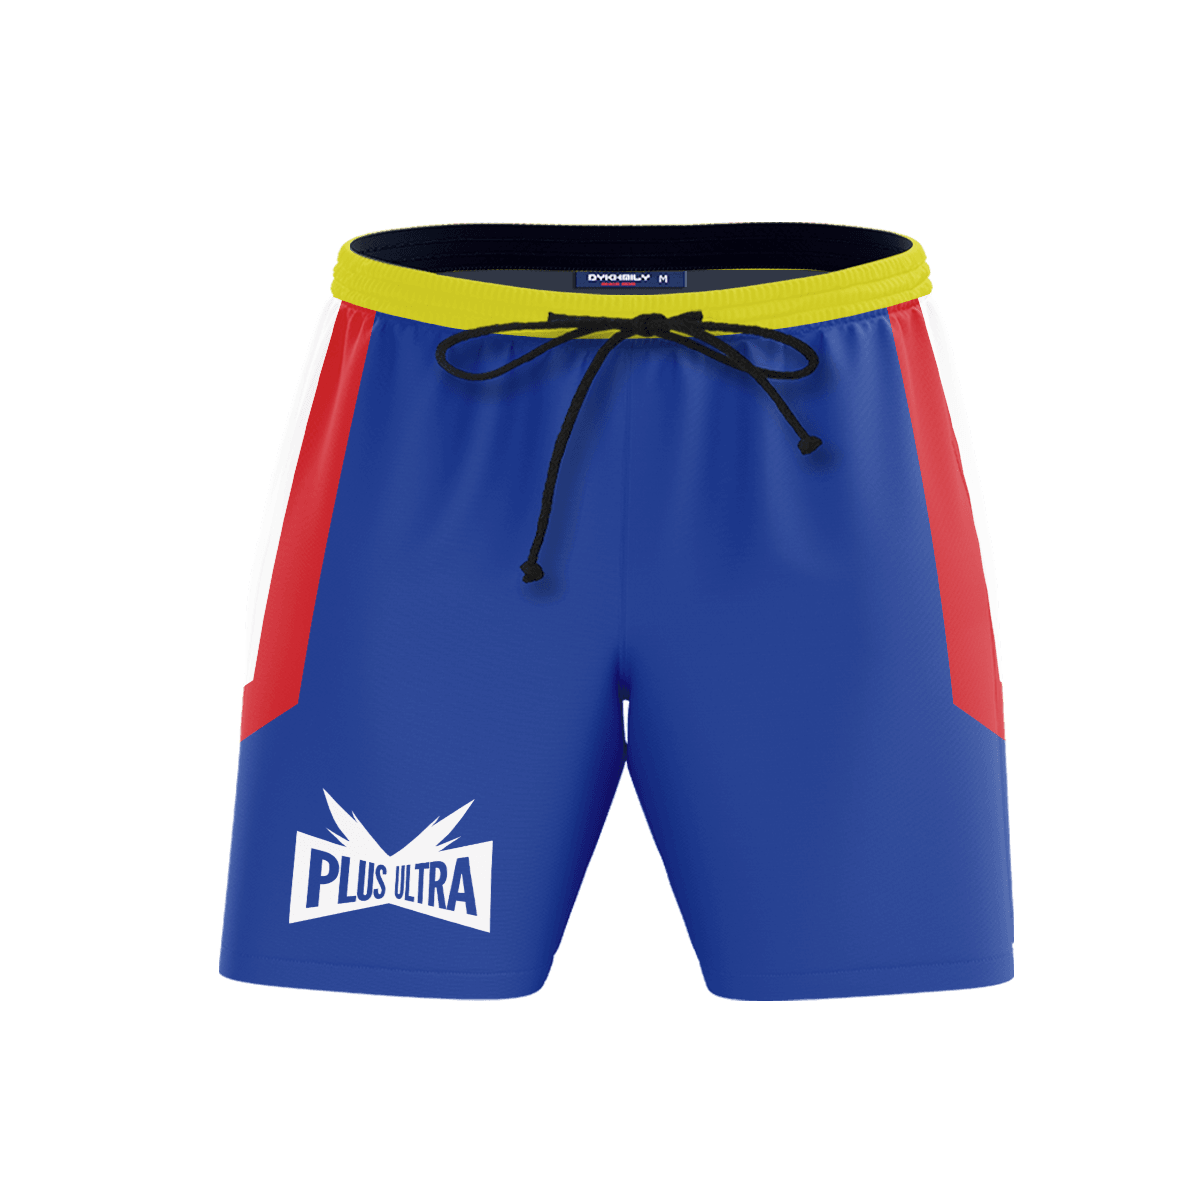 Might Plus Ultra Beach Shorts FDM3107 S Official Anime Swimsuit Merch